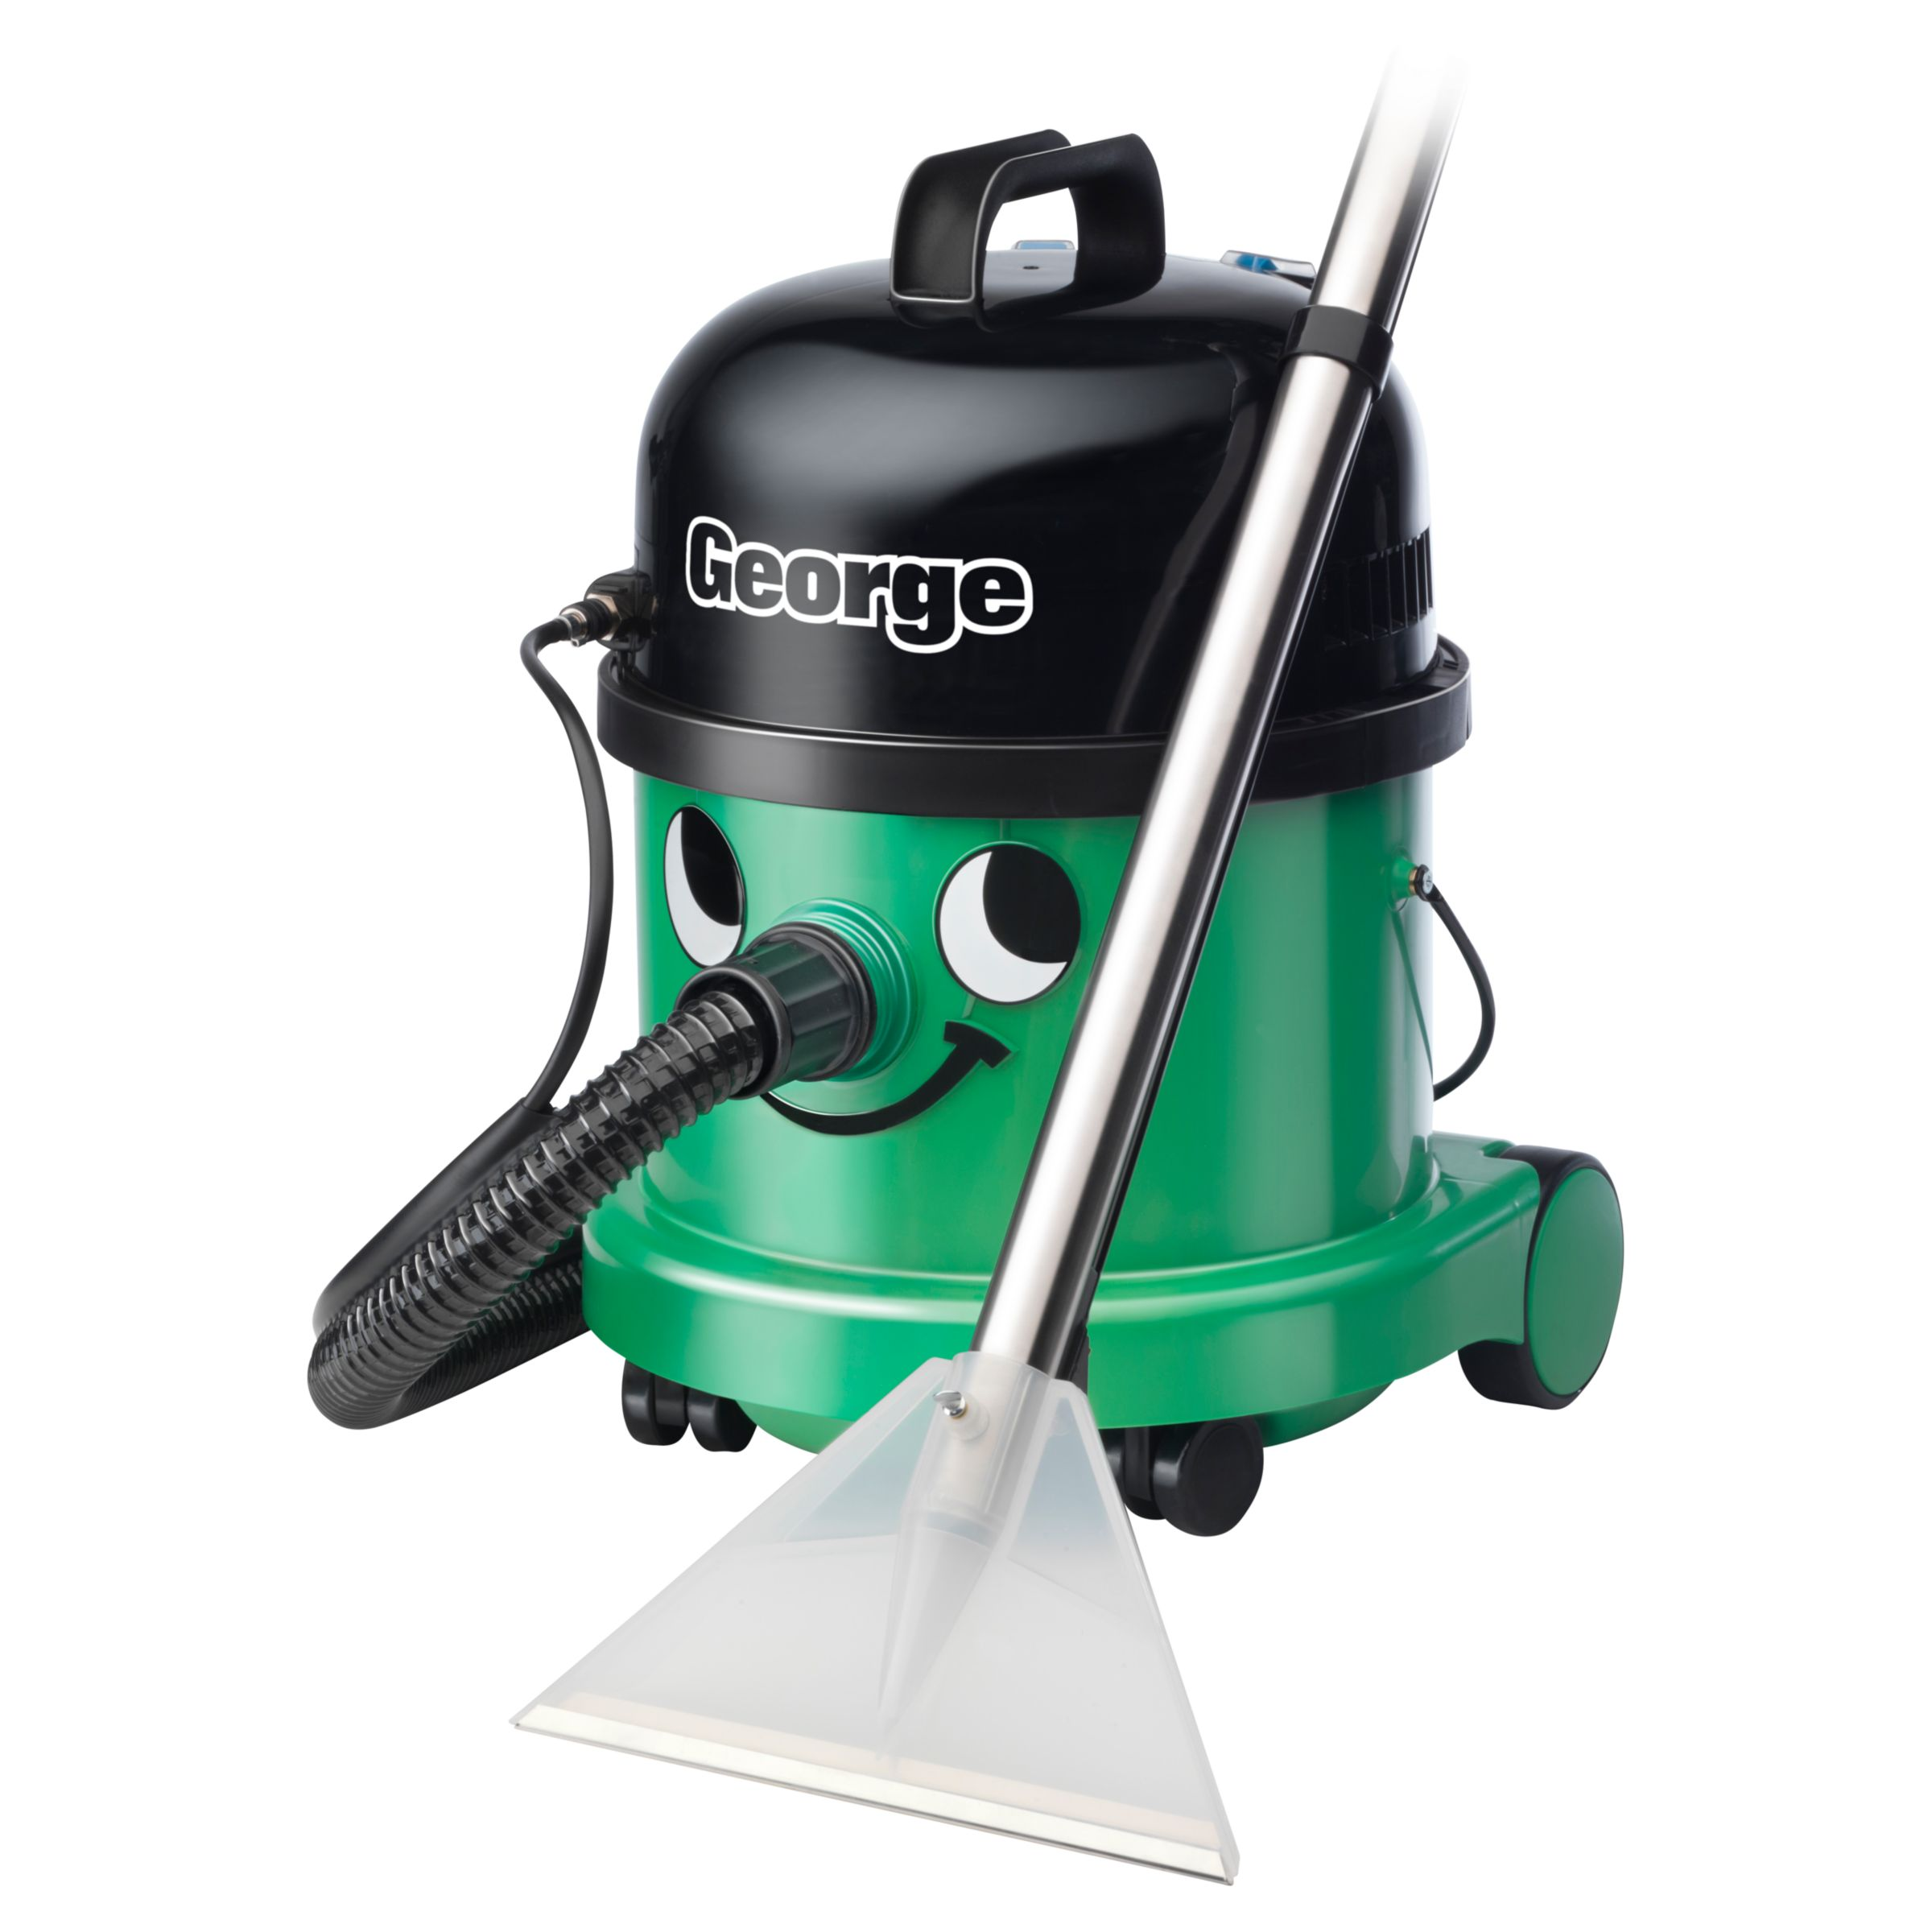 1060Watts 'All-in-One' Wet & Dry Vacuum 15 Litre